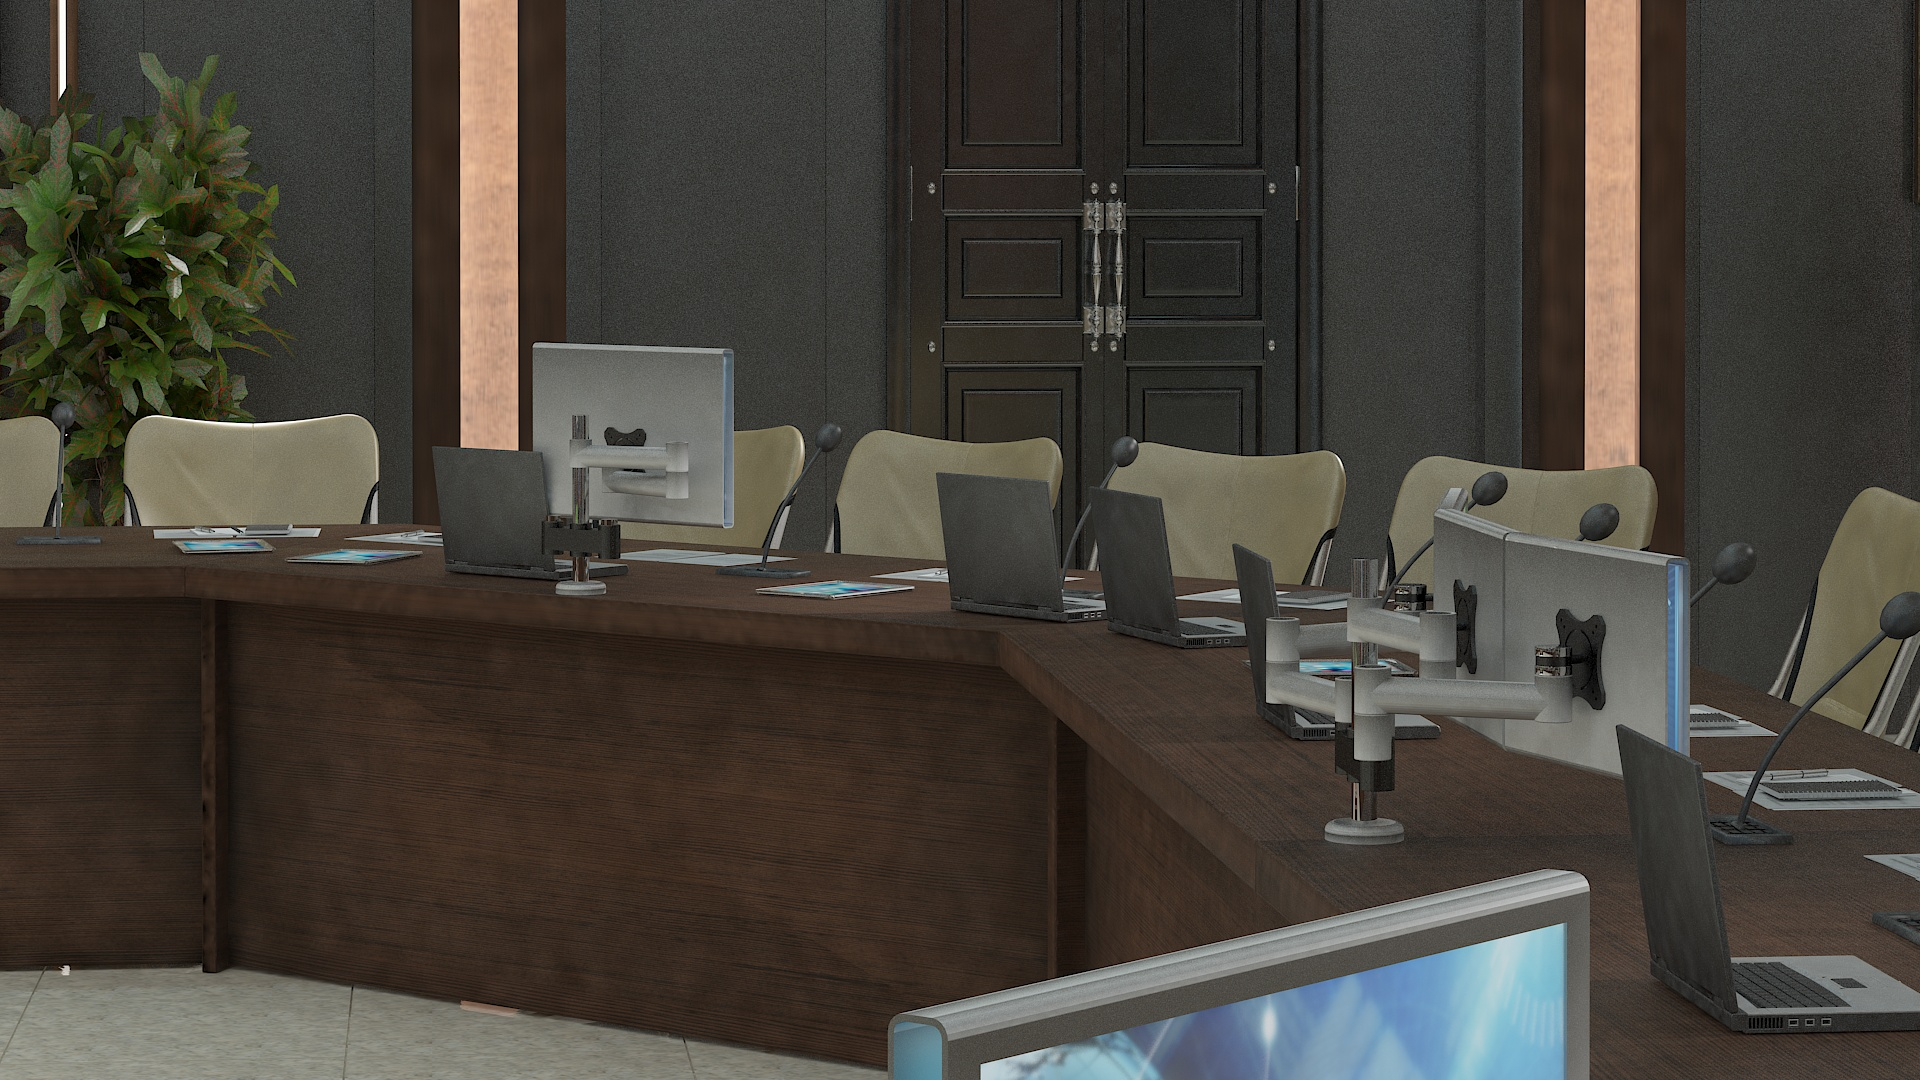 meeting room 1 3d model 3ds max dxf dwg 288139